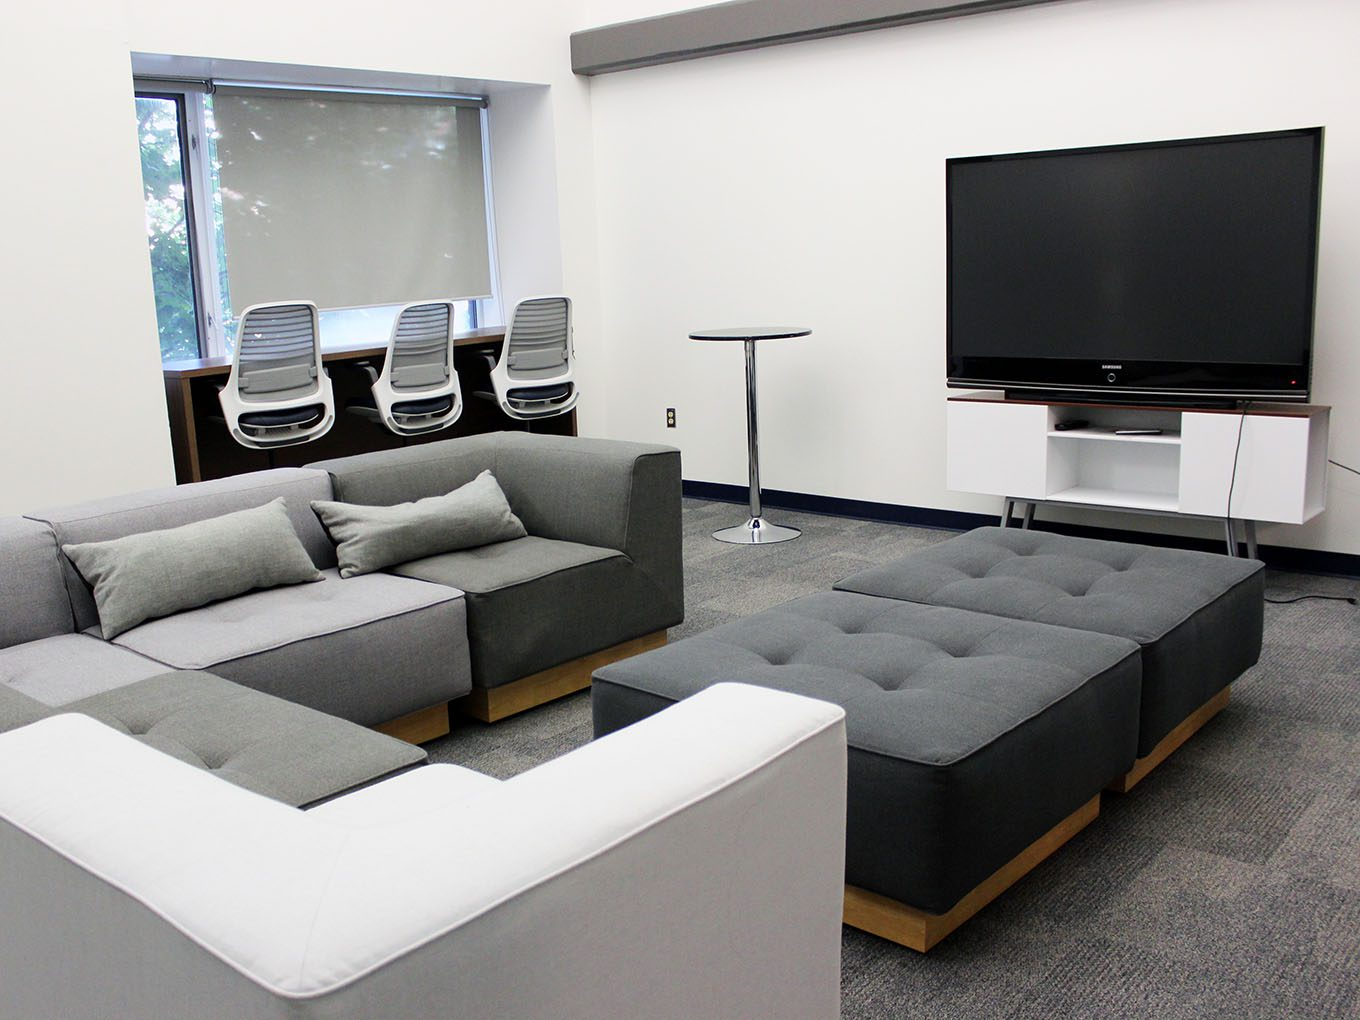 Suites and Amenities - TV room 2